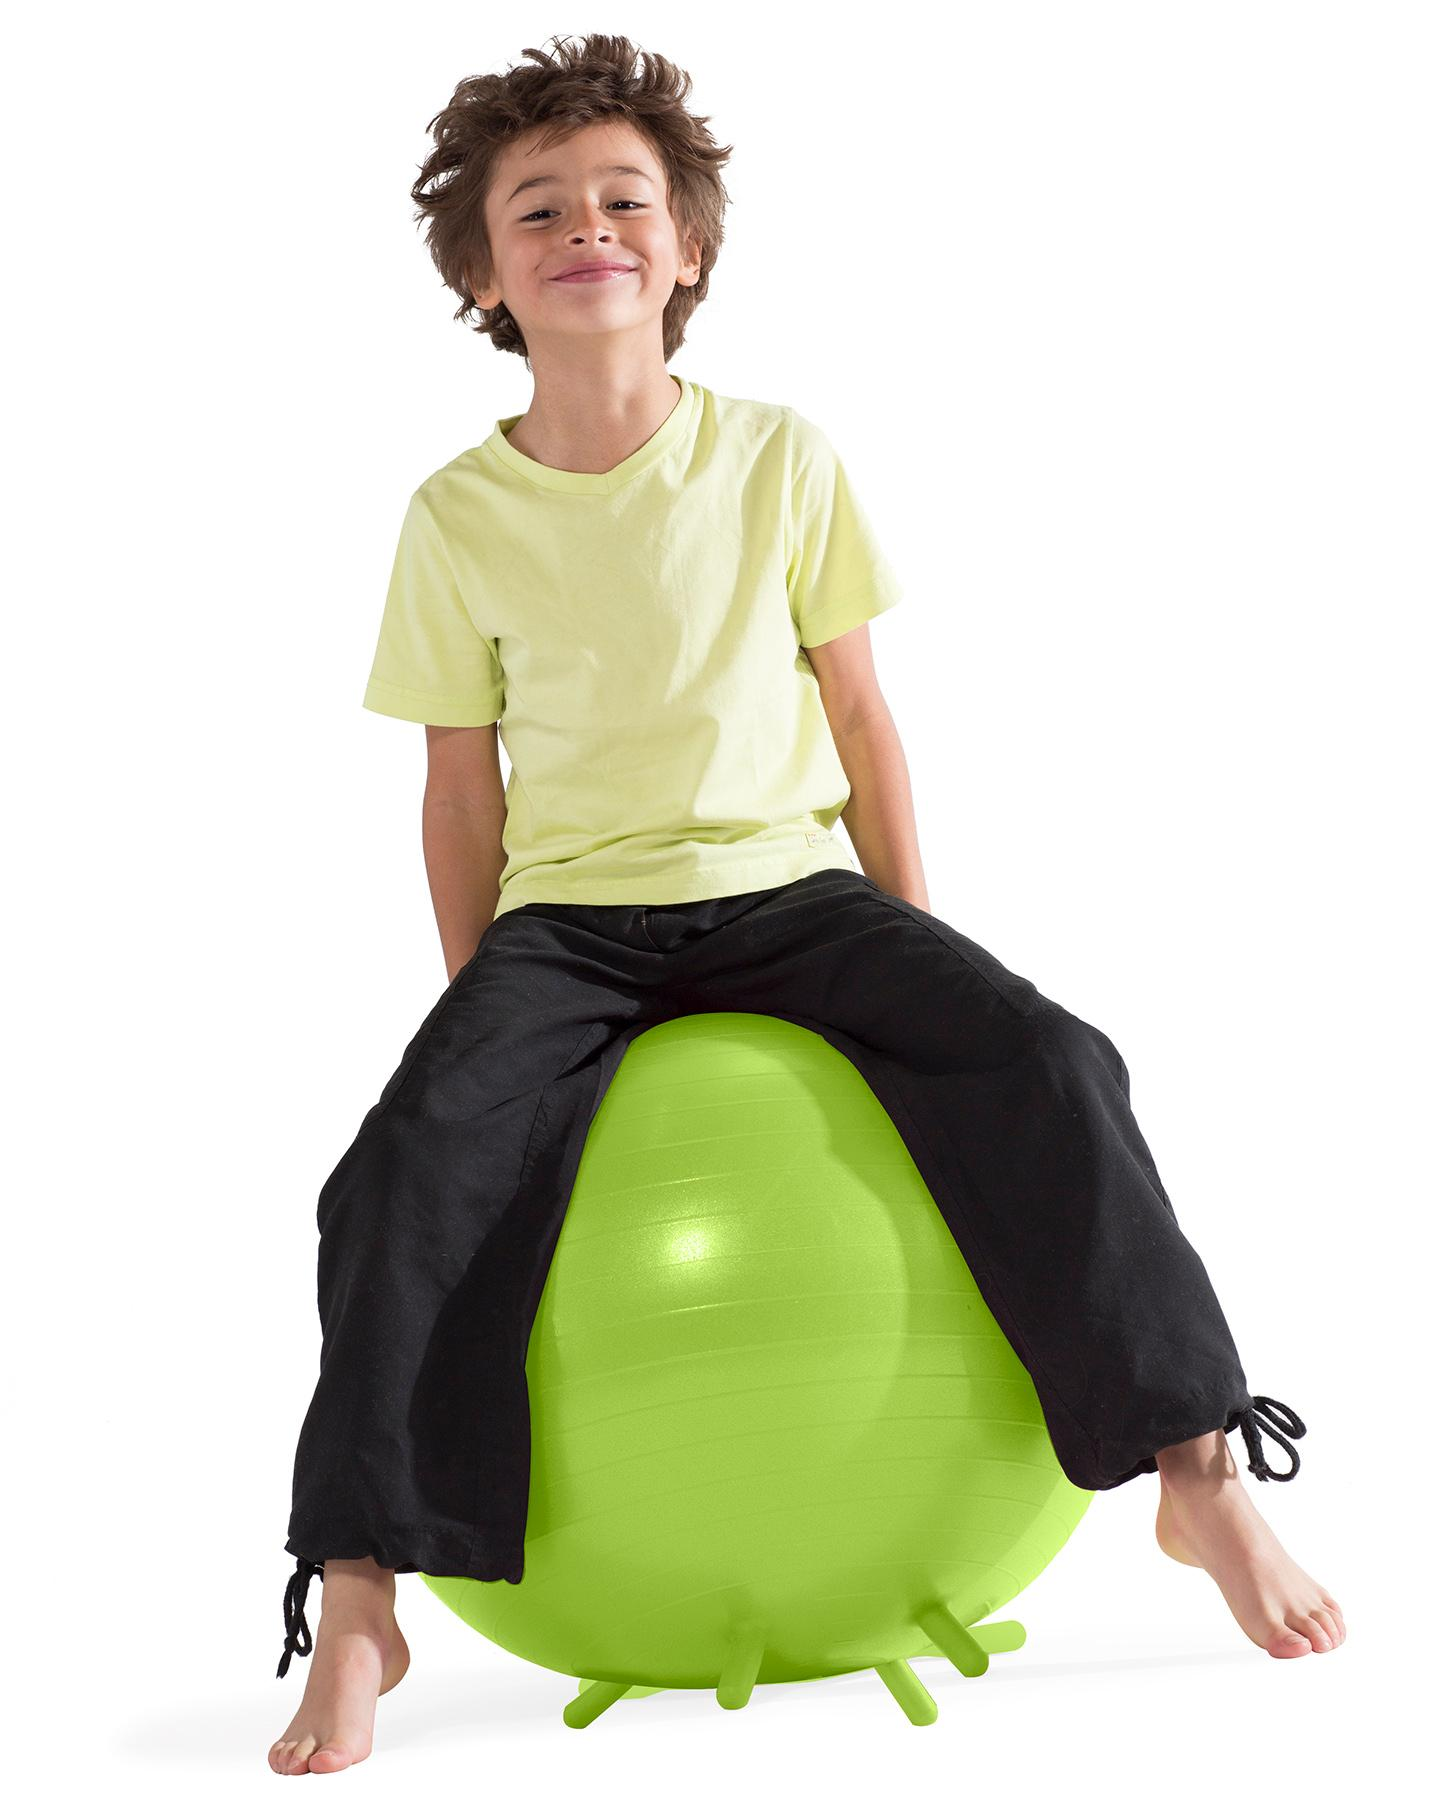 Gaiam kids stay n play balance ball lime for Child on chair